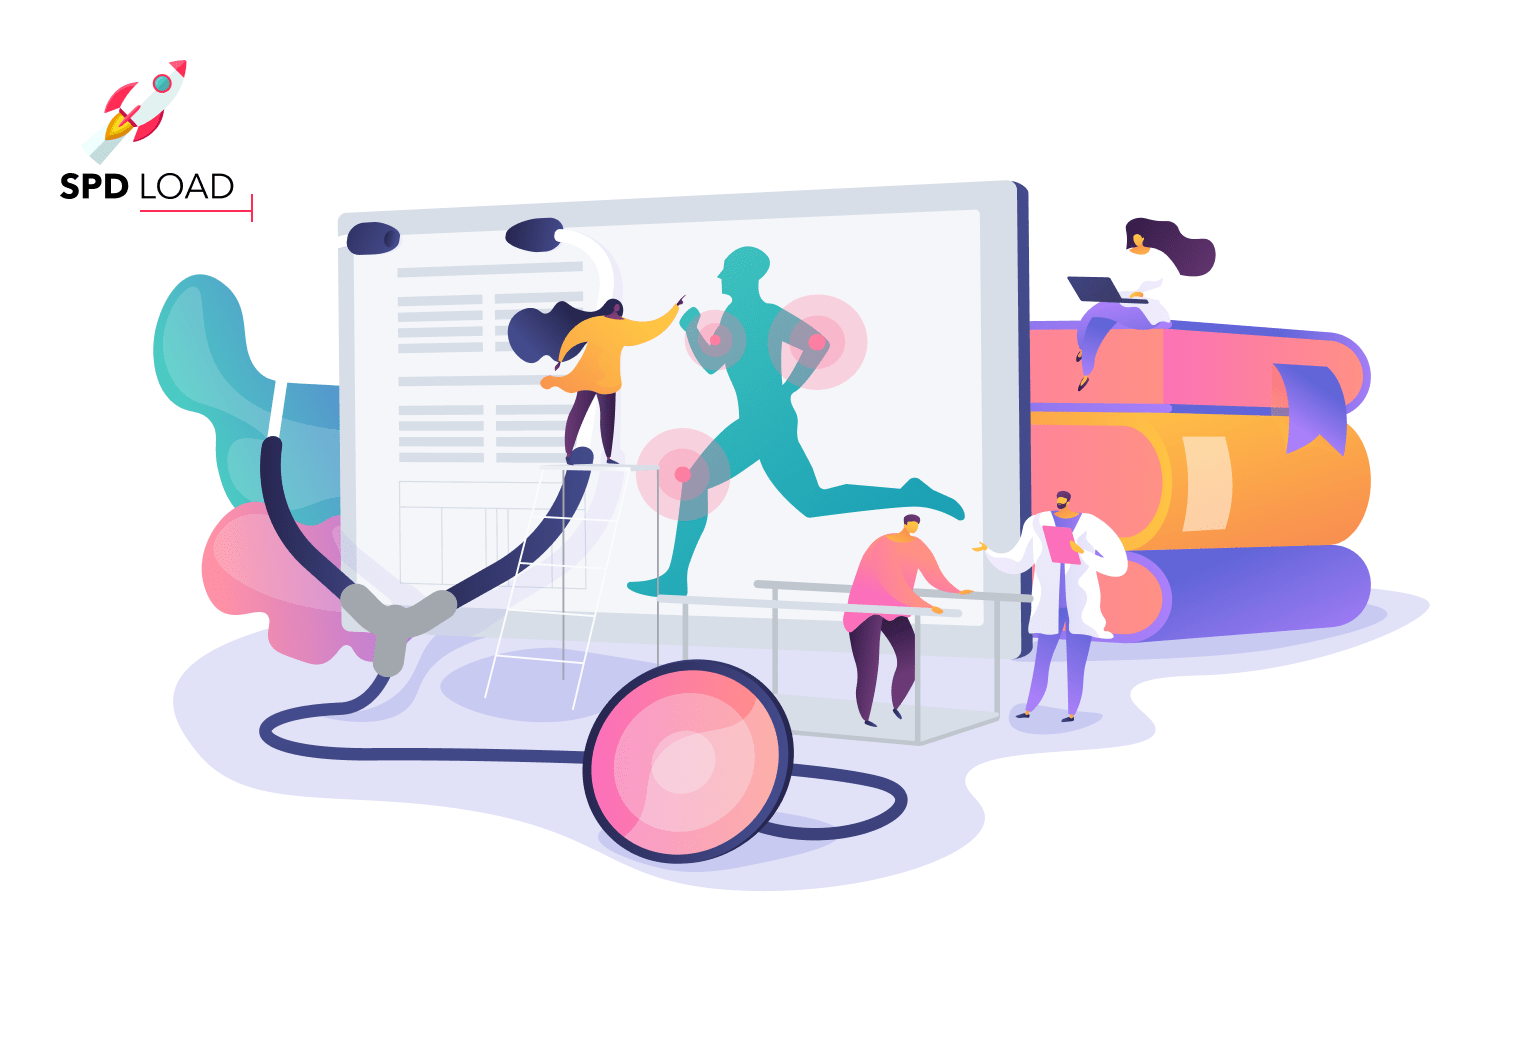 The SpdLoad team prepared an in-depth guide about healthcare website design for founders of early stage startups